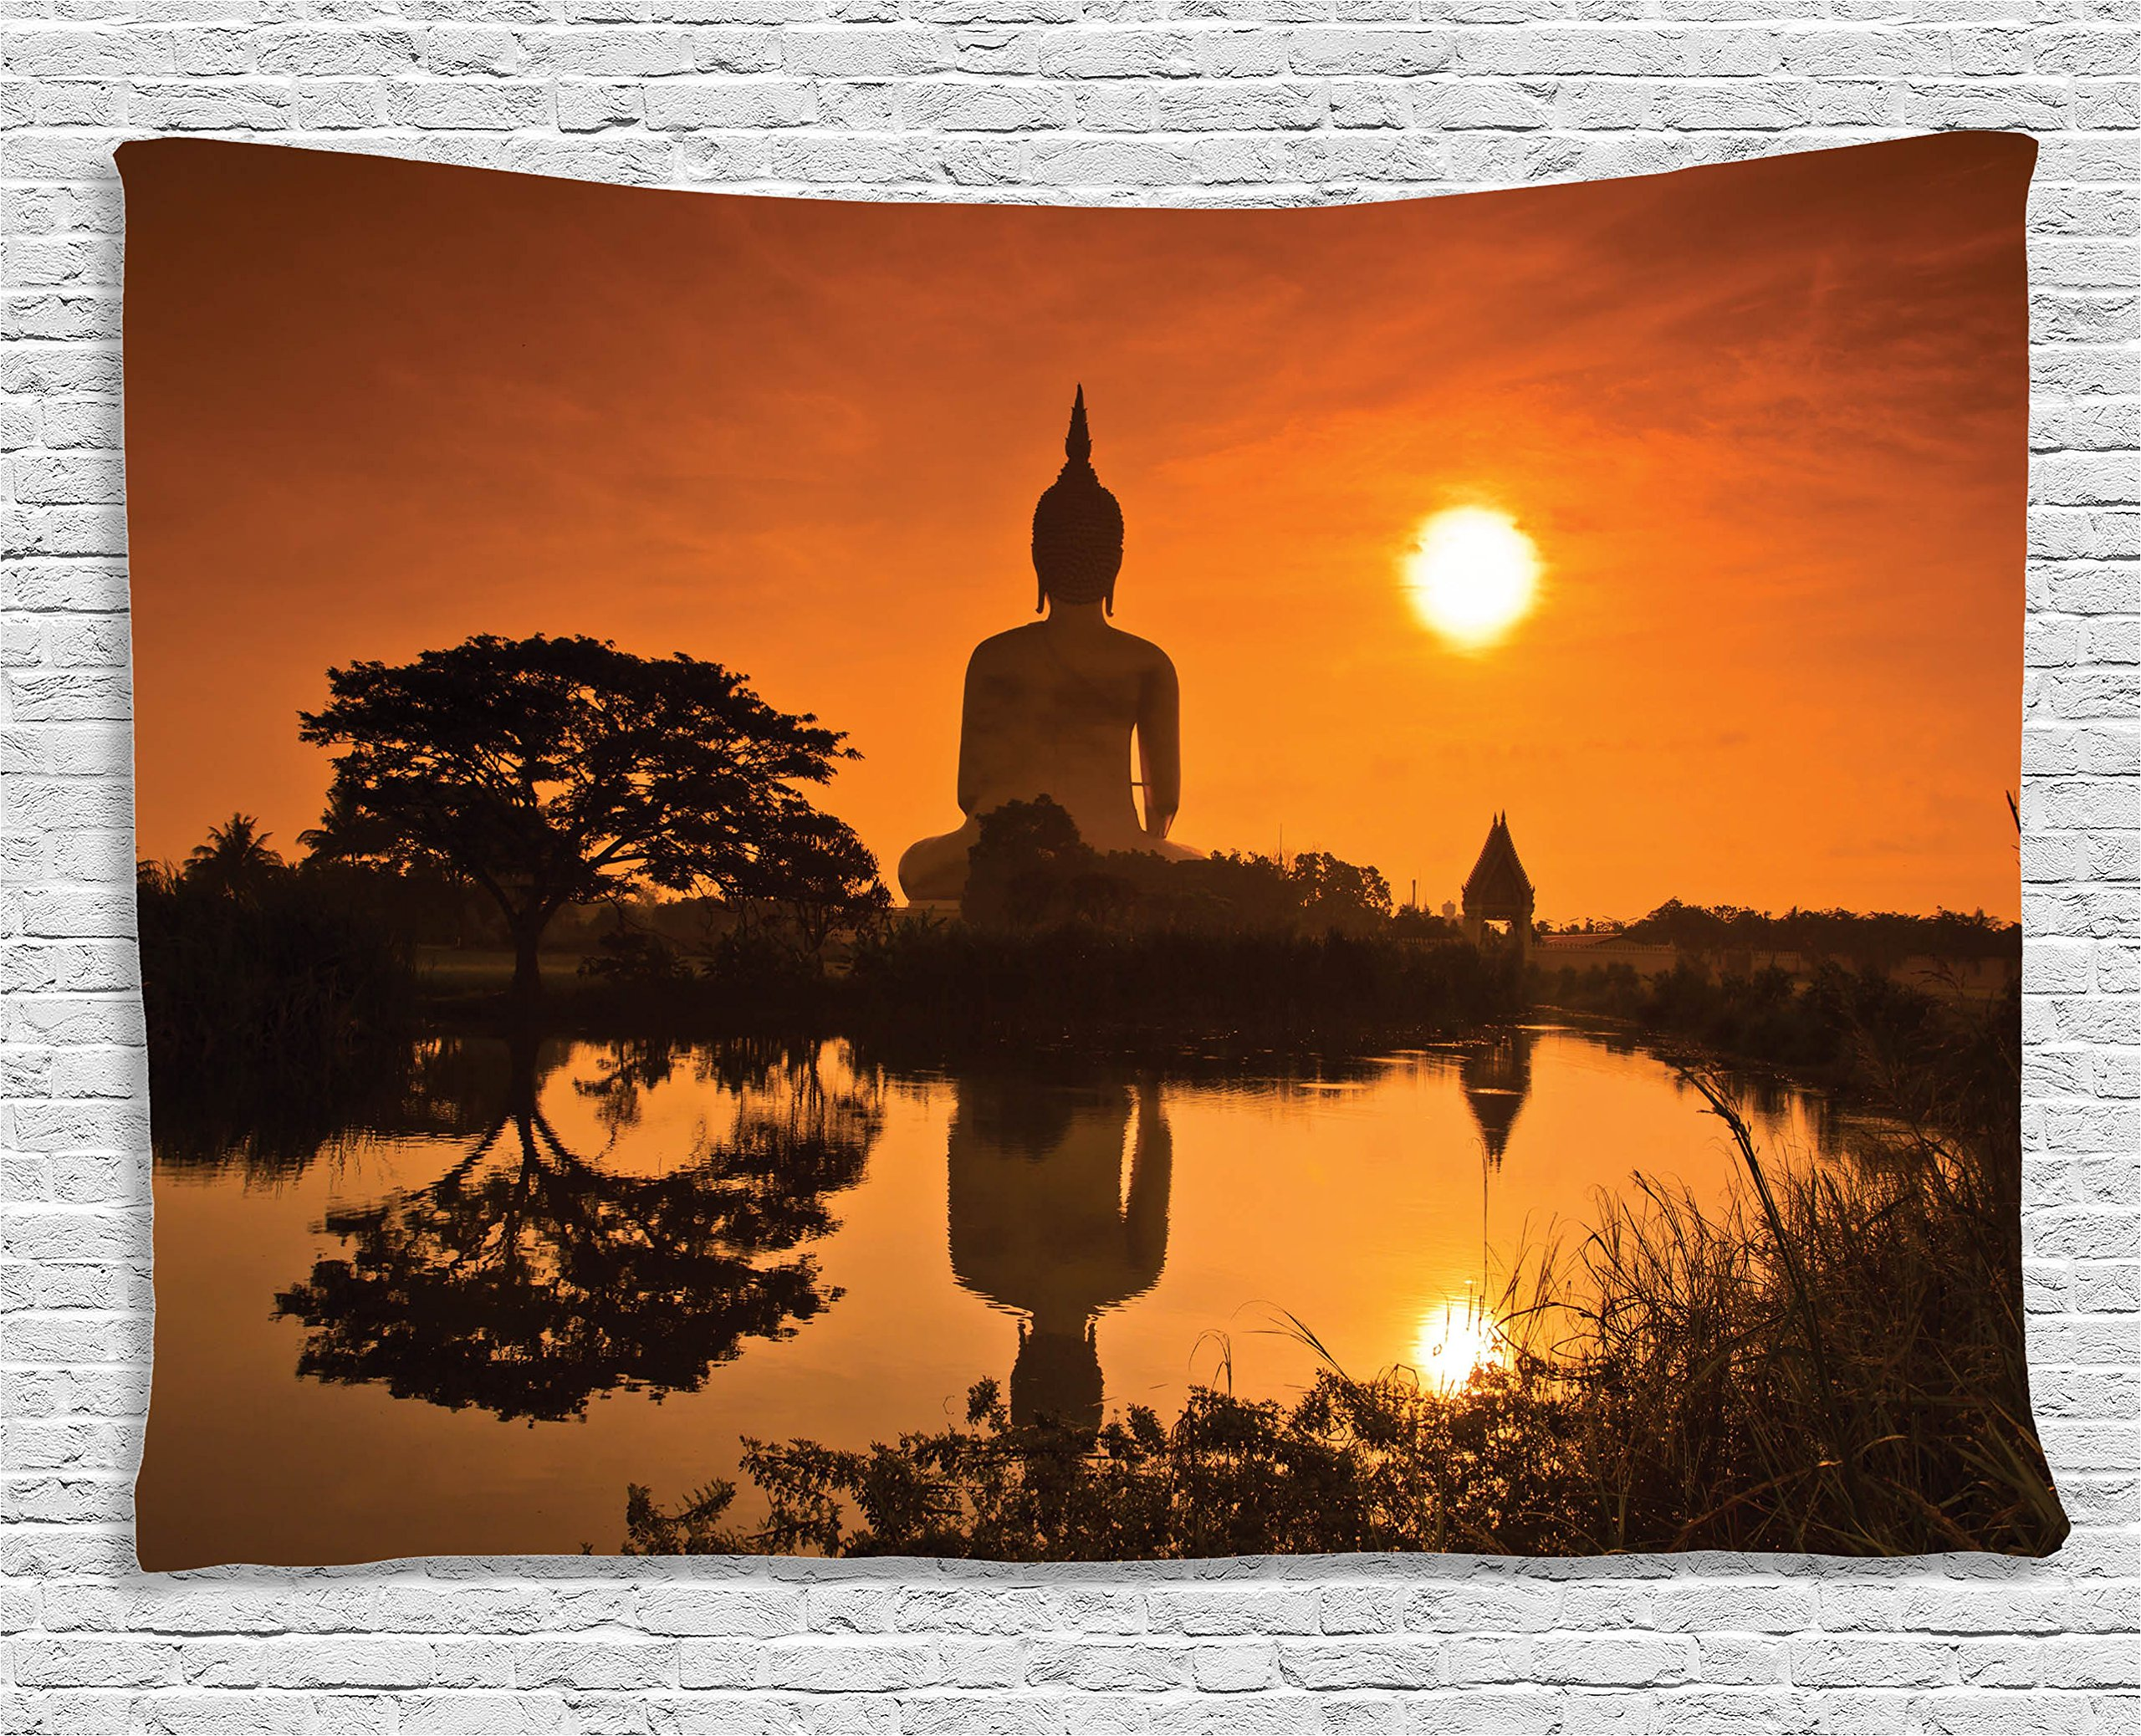 Ambesonne Orange Tapestry Asian Decor, Big Giant Statue by The River at Sunset Thai Asian Culture Scene Yin Yang Print, Bedroom Living Room Dorm Wall Hanging Art, 60 W X 40 L inches, Burnt Orange by Ambesonne